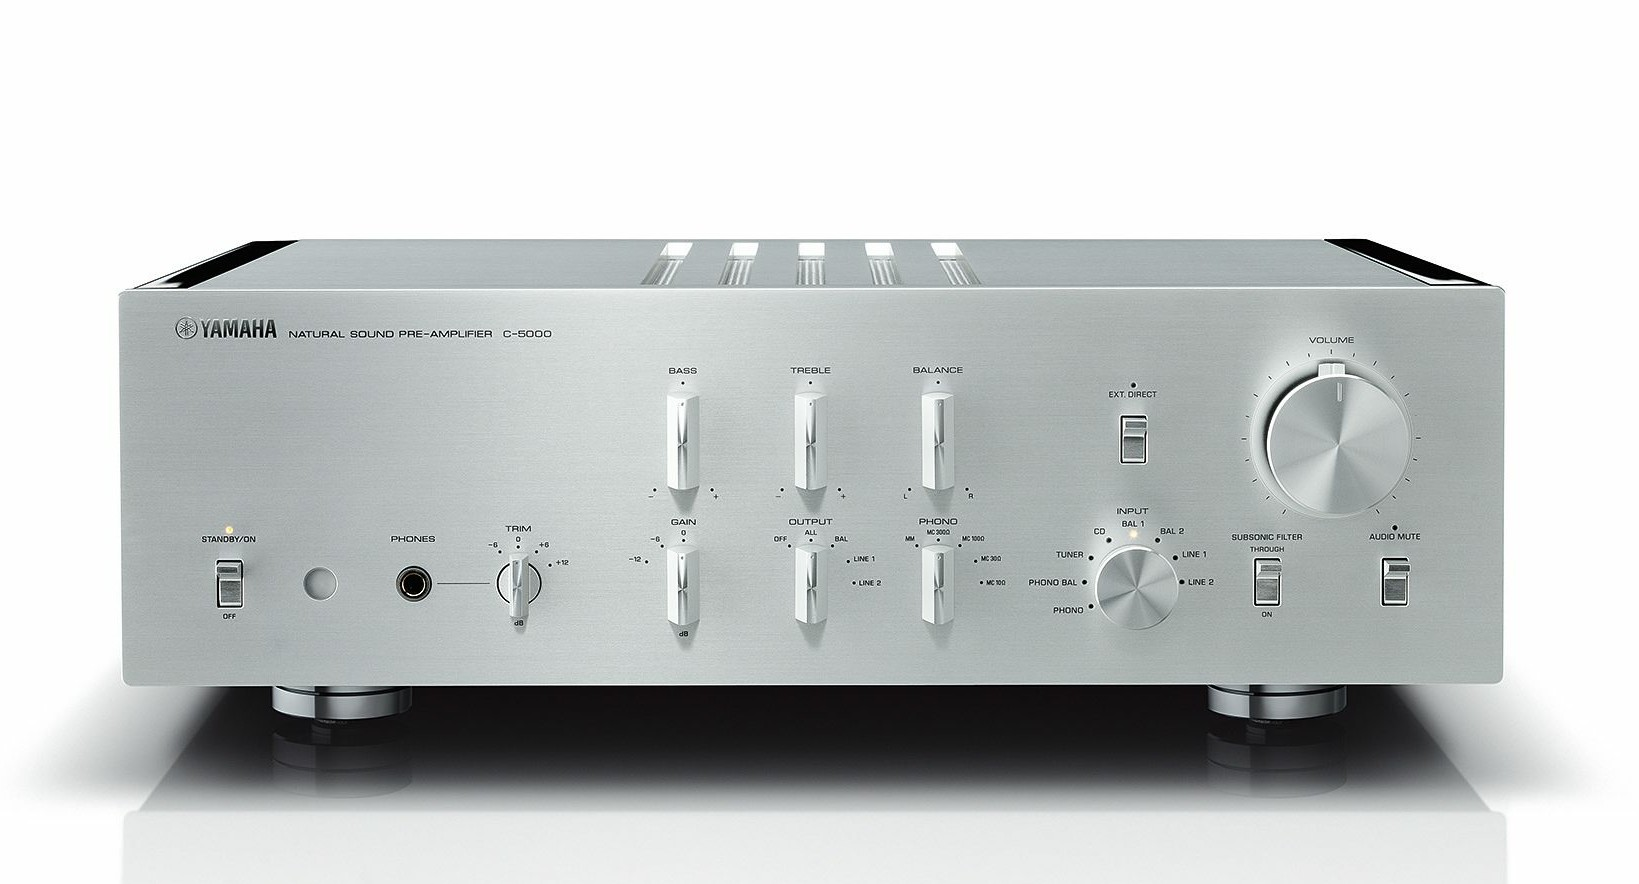 Top Of The Line Hifi Gear From Yamaha Announced Wall Sound Being In To Radio Control Since Mid 70 S C 5000 This 42 Lb Preamp Boasts High End Controls A Copper Plated Inner Chassis And Yamahas Famous Tone Defeat Circuit Glance At Specs Shows